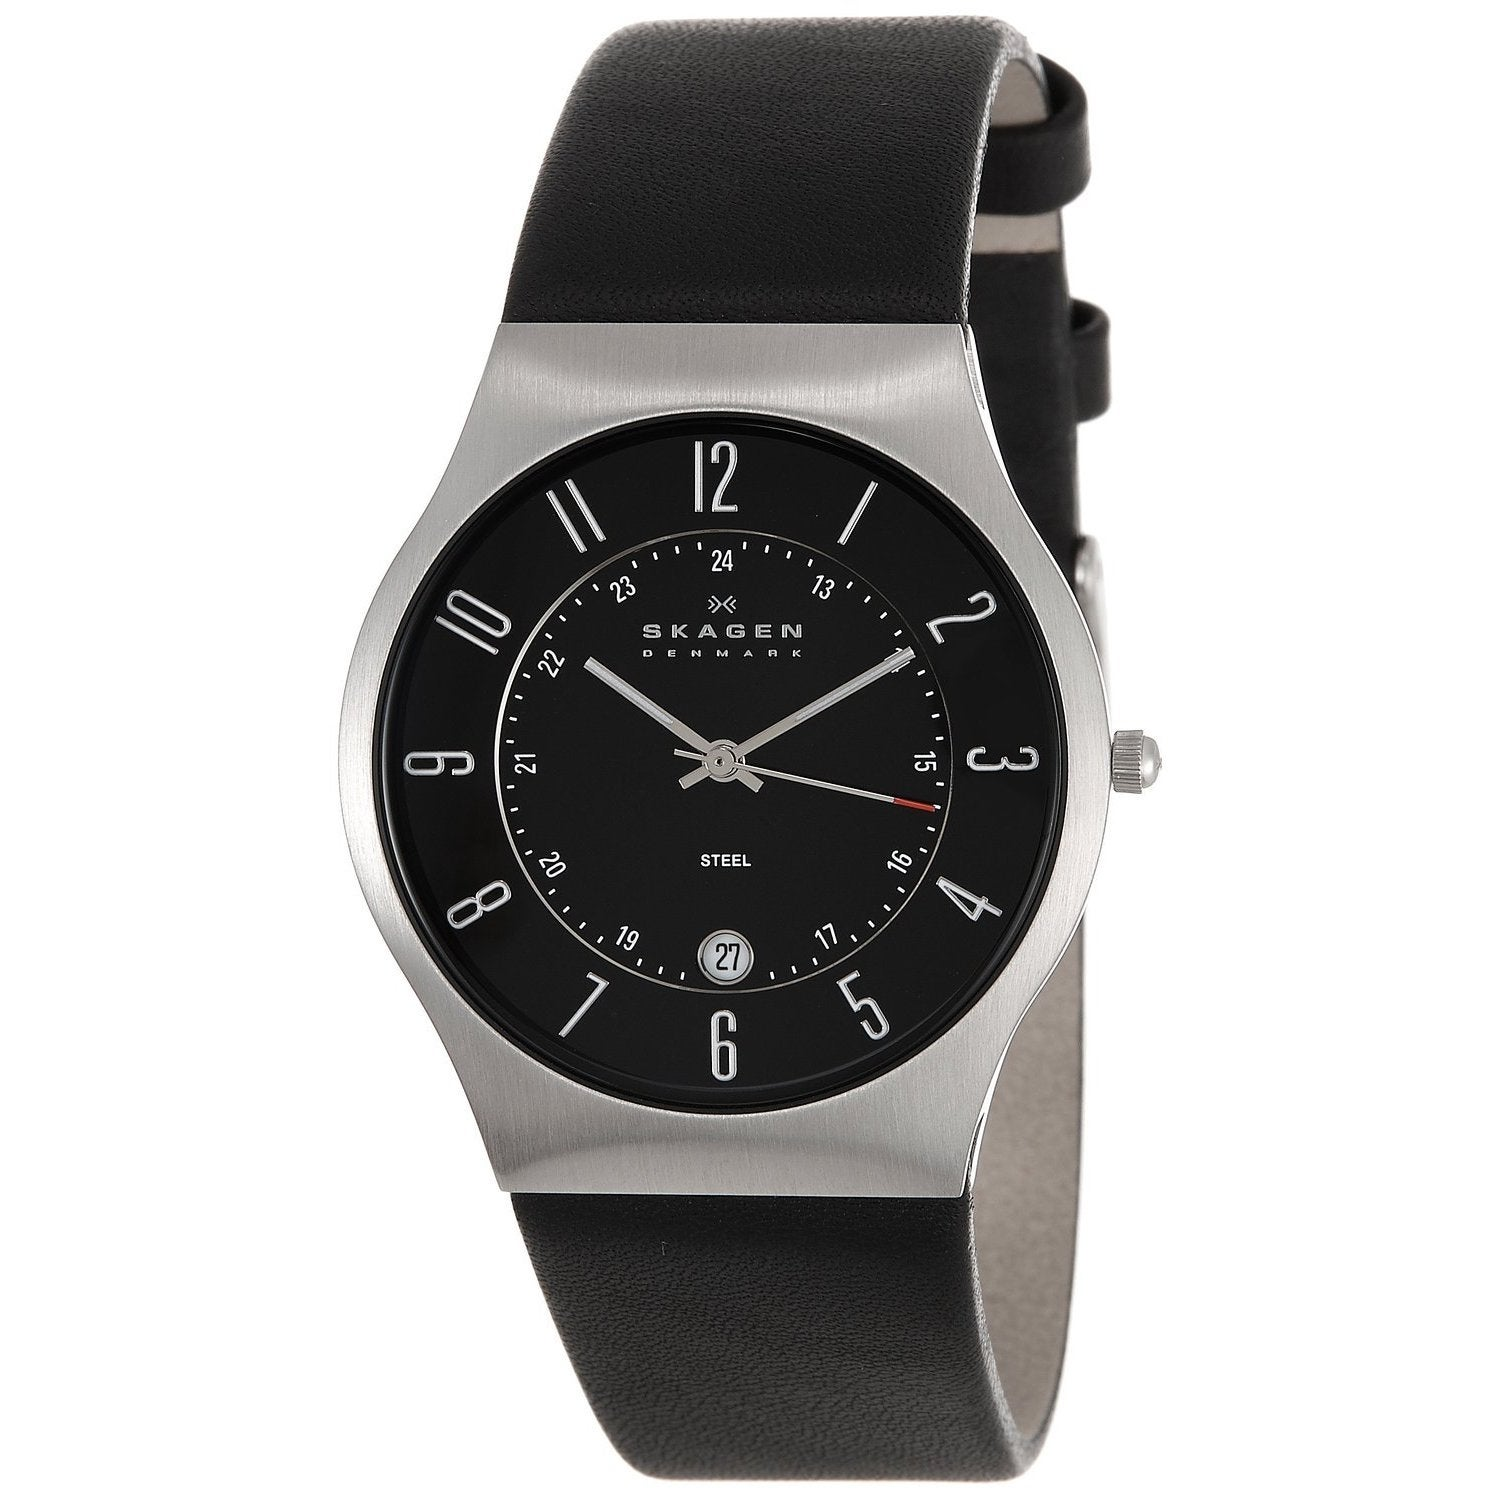 Skagen Men's 233XXLSLB Black Leather Strap Watch (Black d...